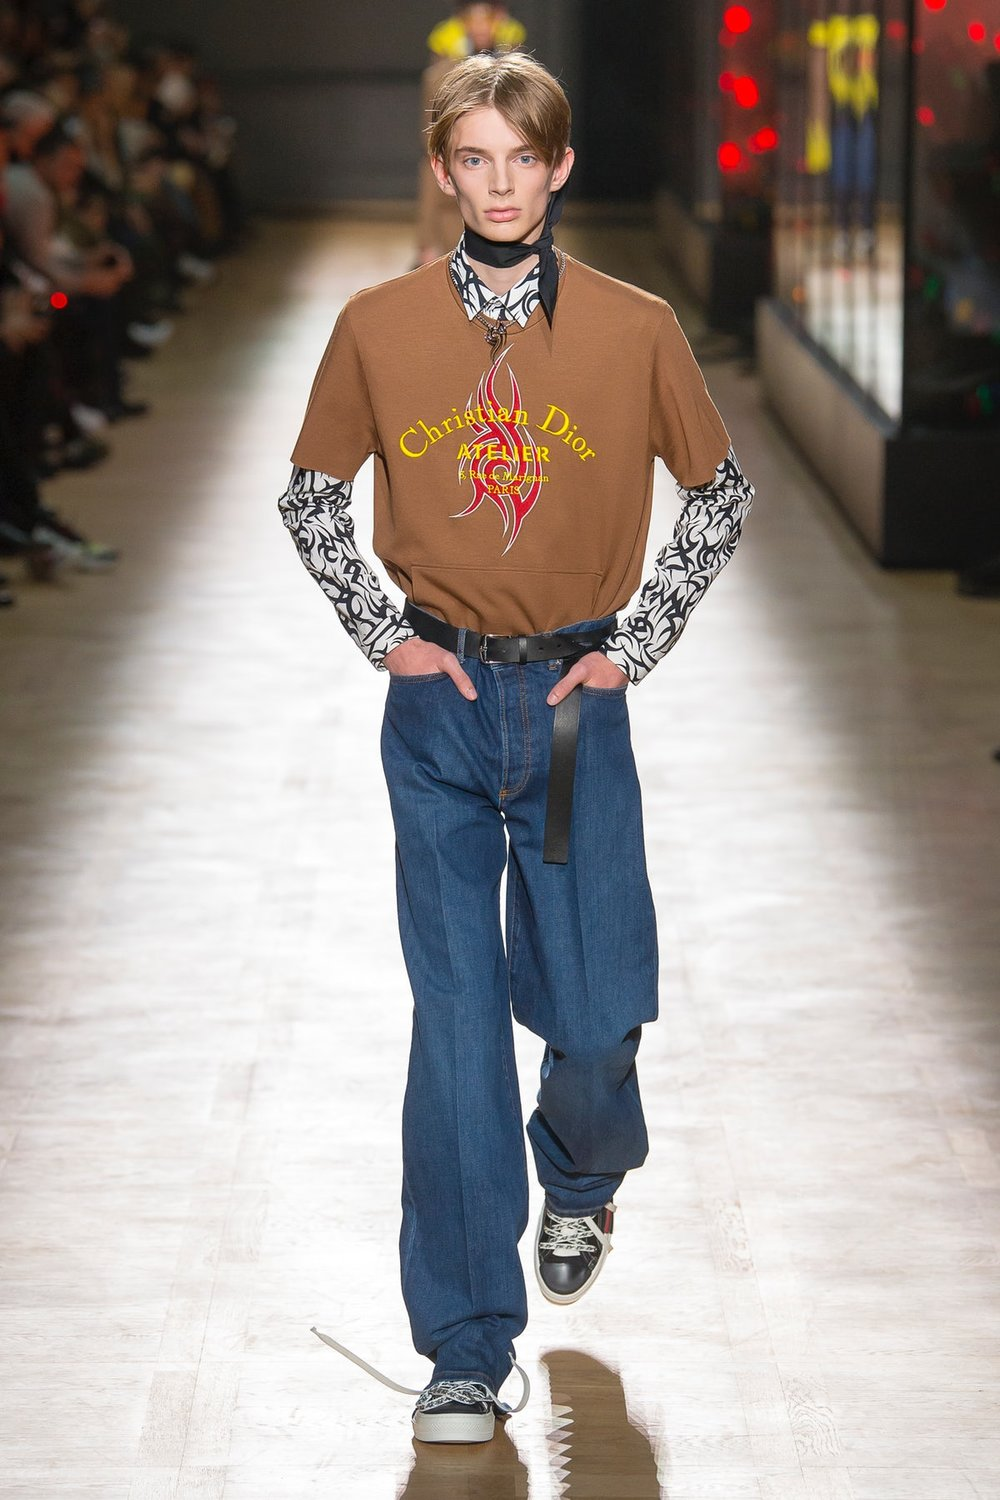 dior_homme_look_31_menswear_autumn_2018.jpeg